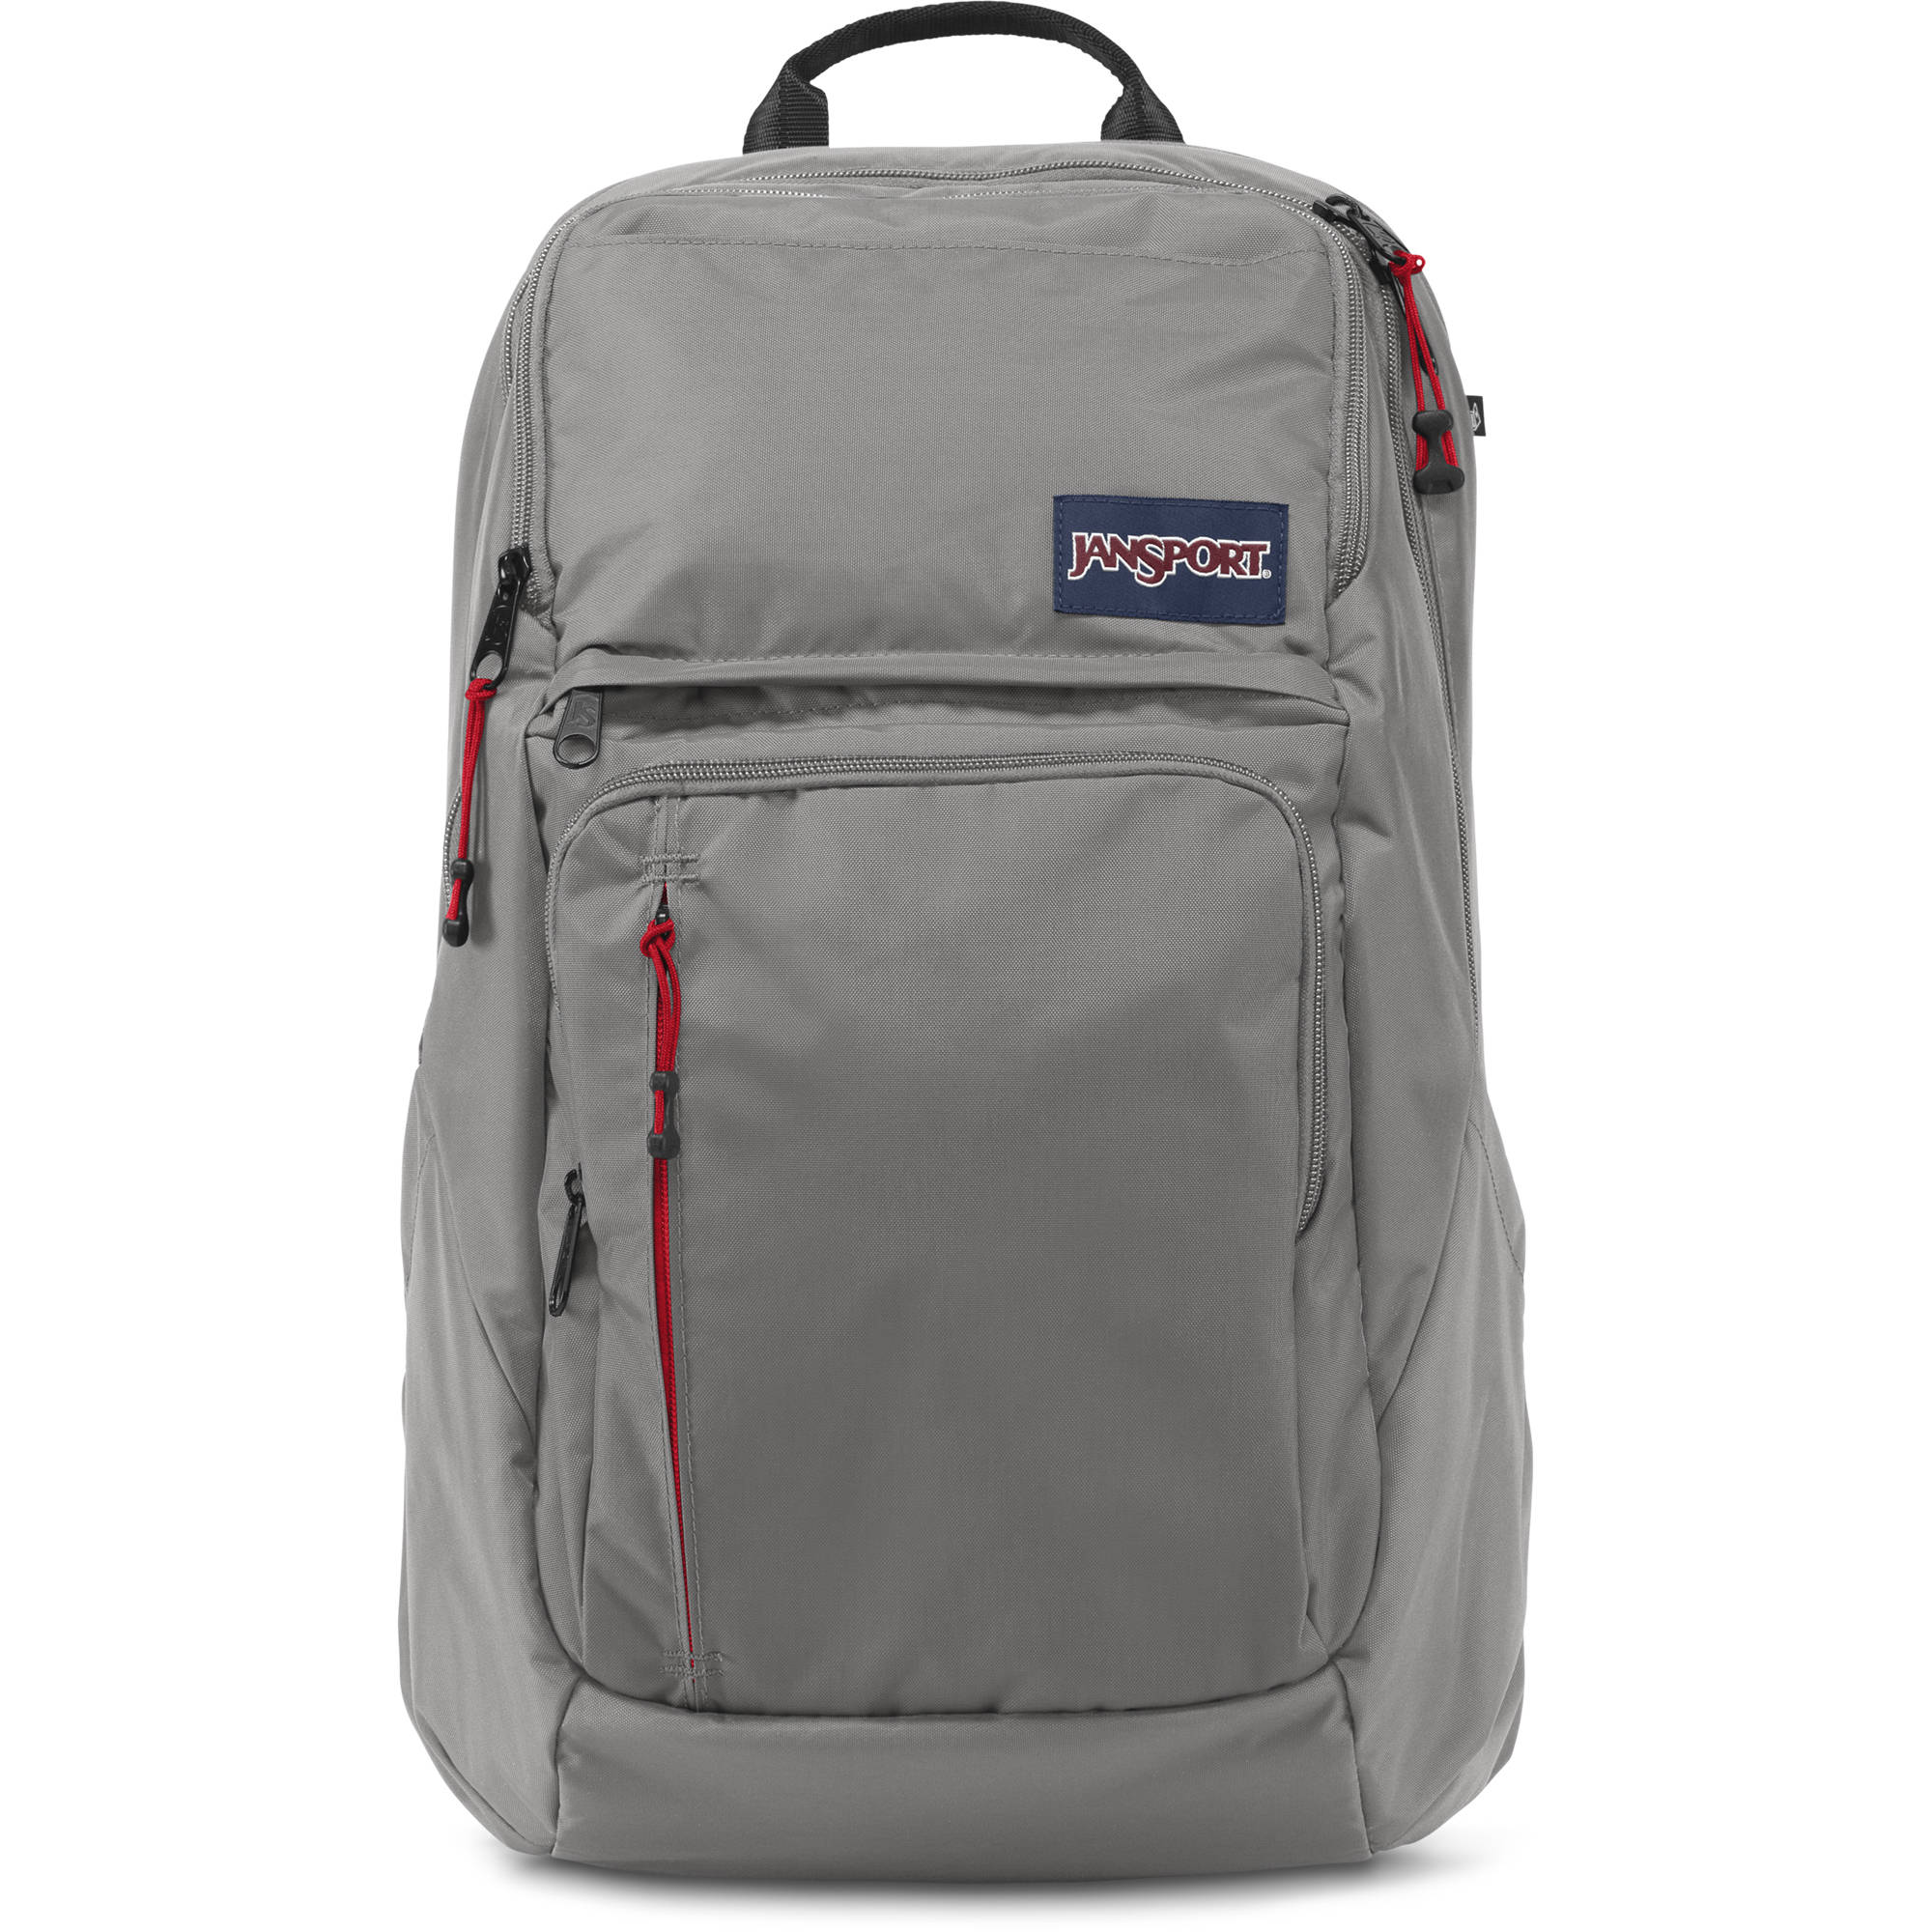 632993f2a JanSport Broadband 30L Backpack (Shady Gray) T68S9RS B&H Photo